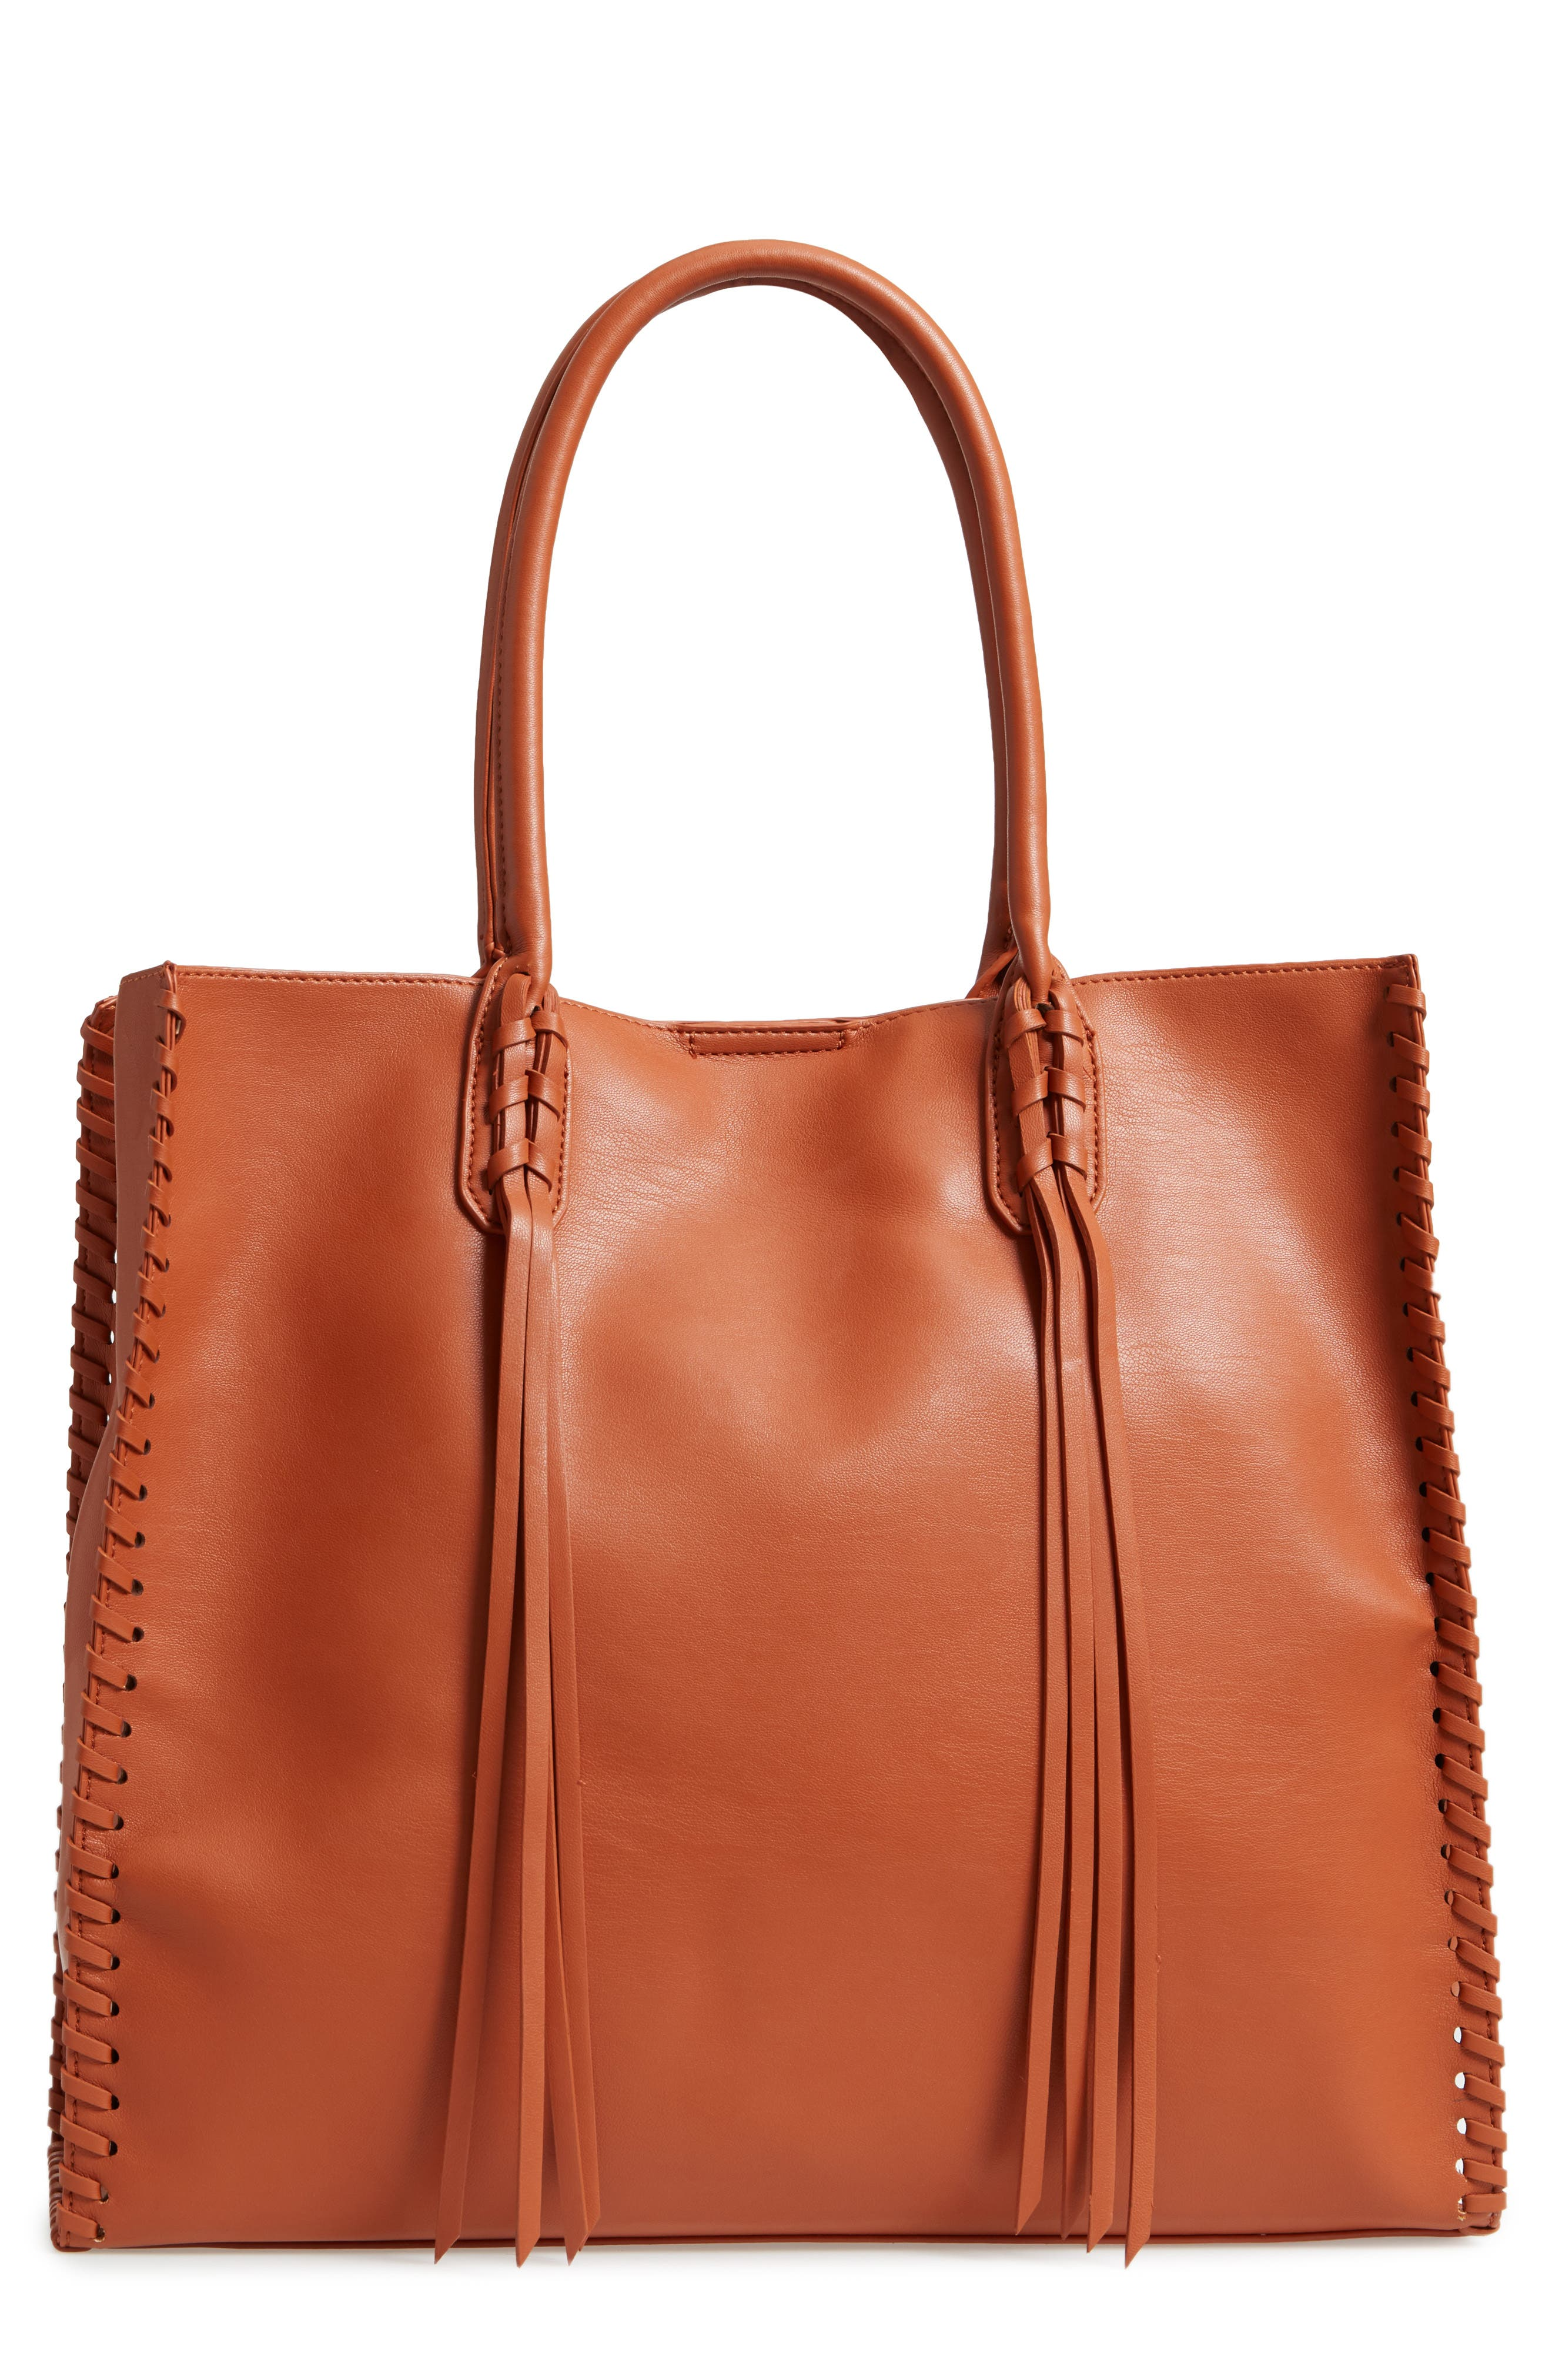 Cadence Faux Leather Whipstitch Tote,                         Main,                         color, Cognac